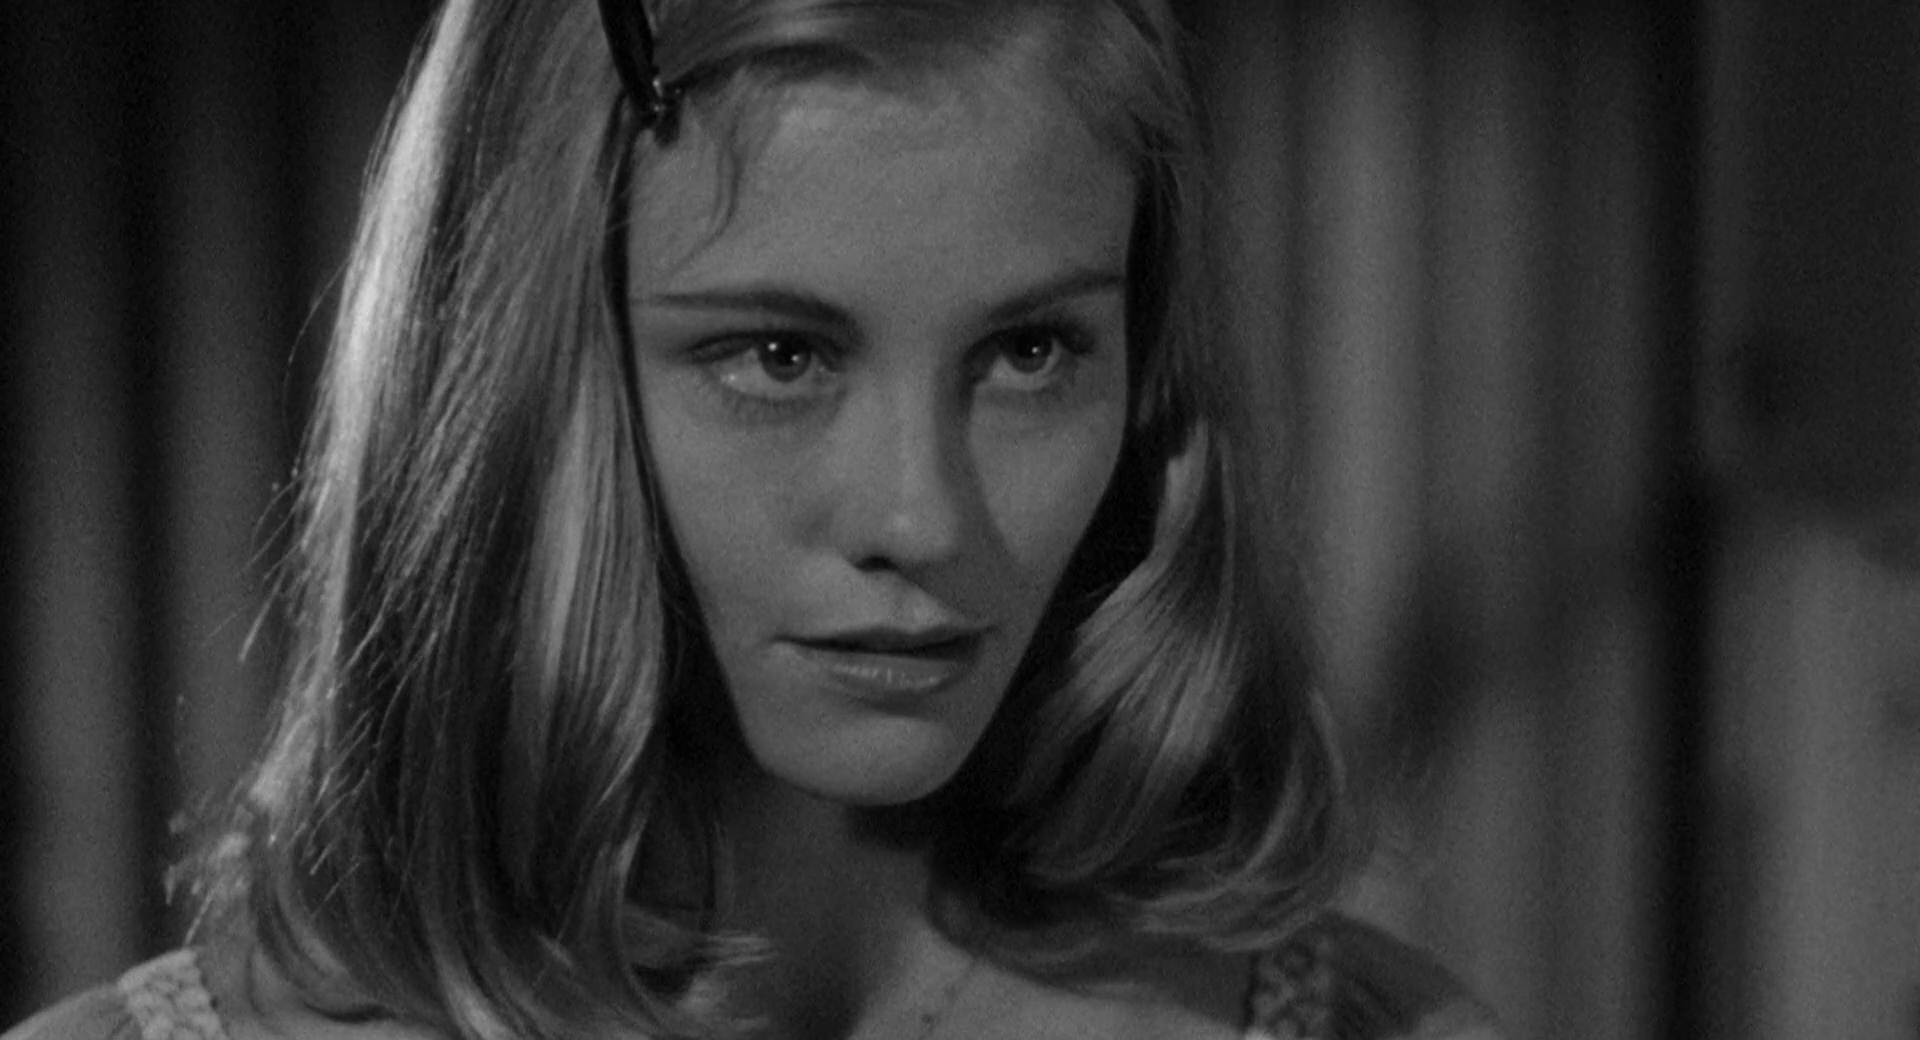 Pin by From Colorado on Cybill Shepherd | The last picture ...